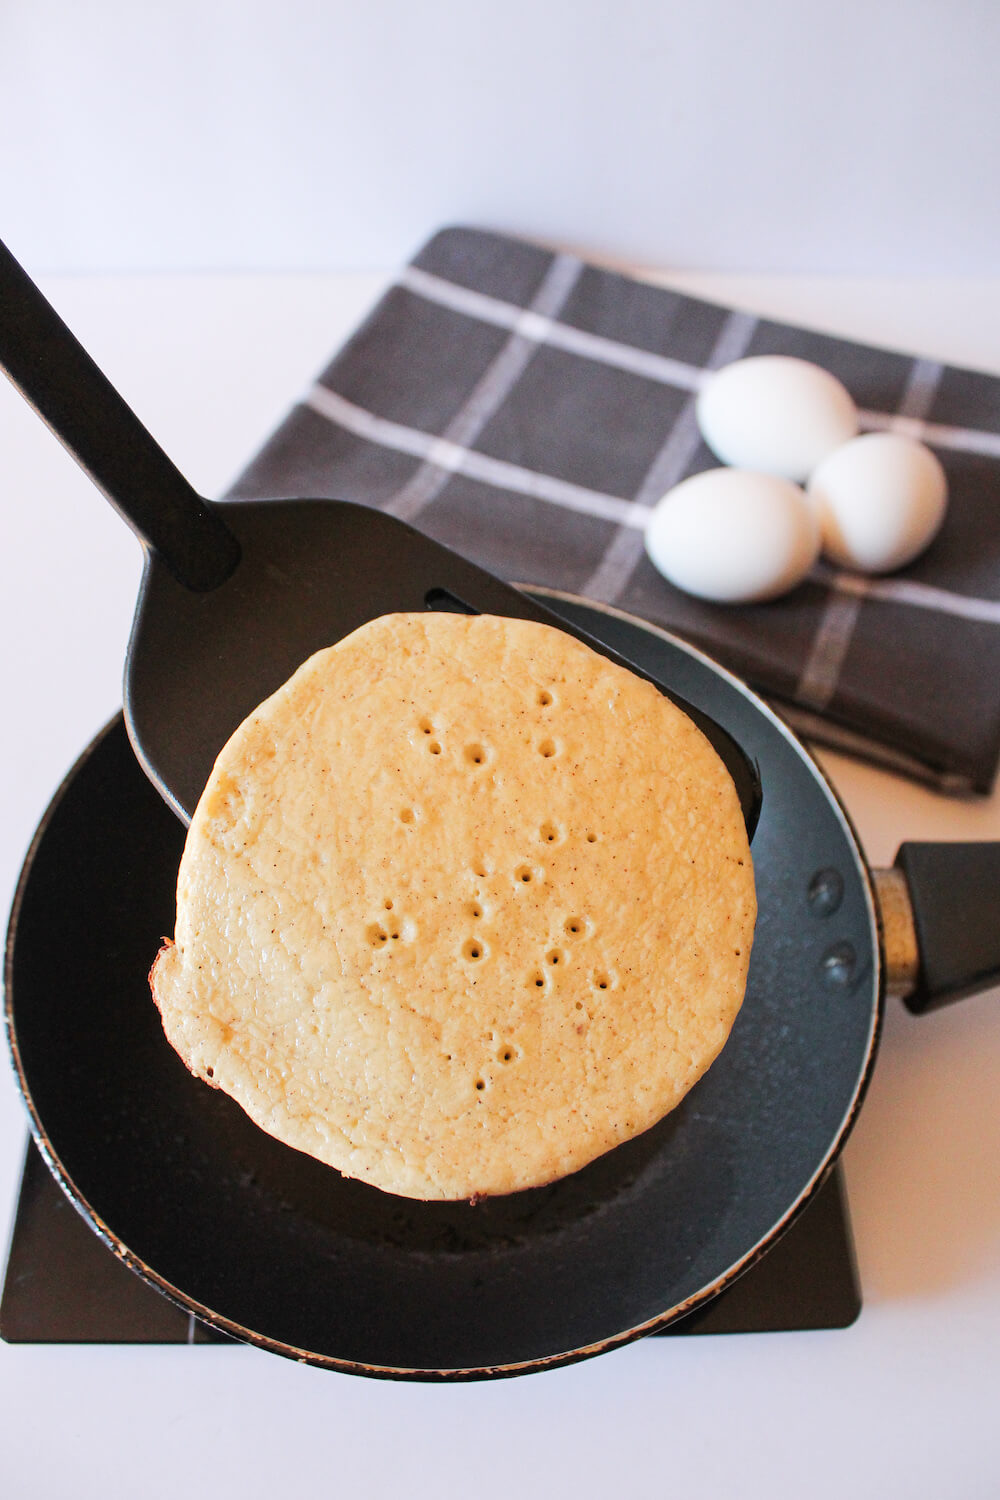 Flipping a keto almond flour pancake in the pan